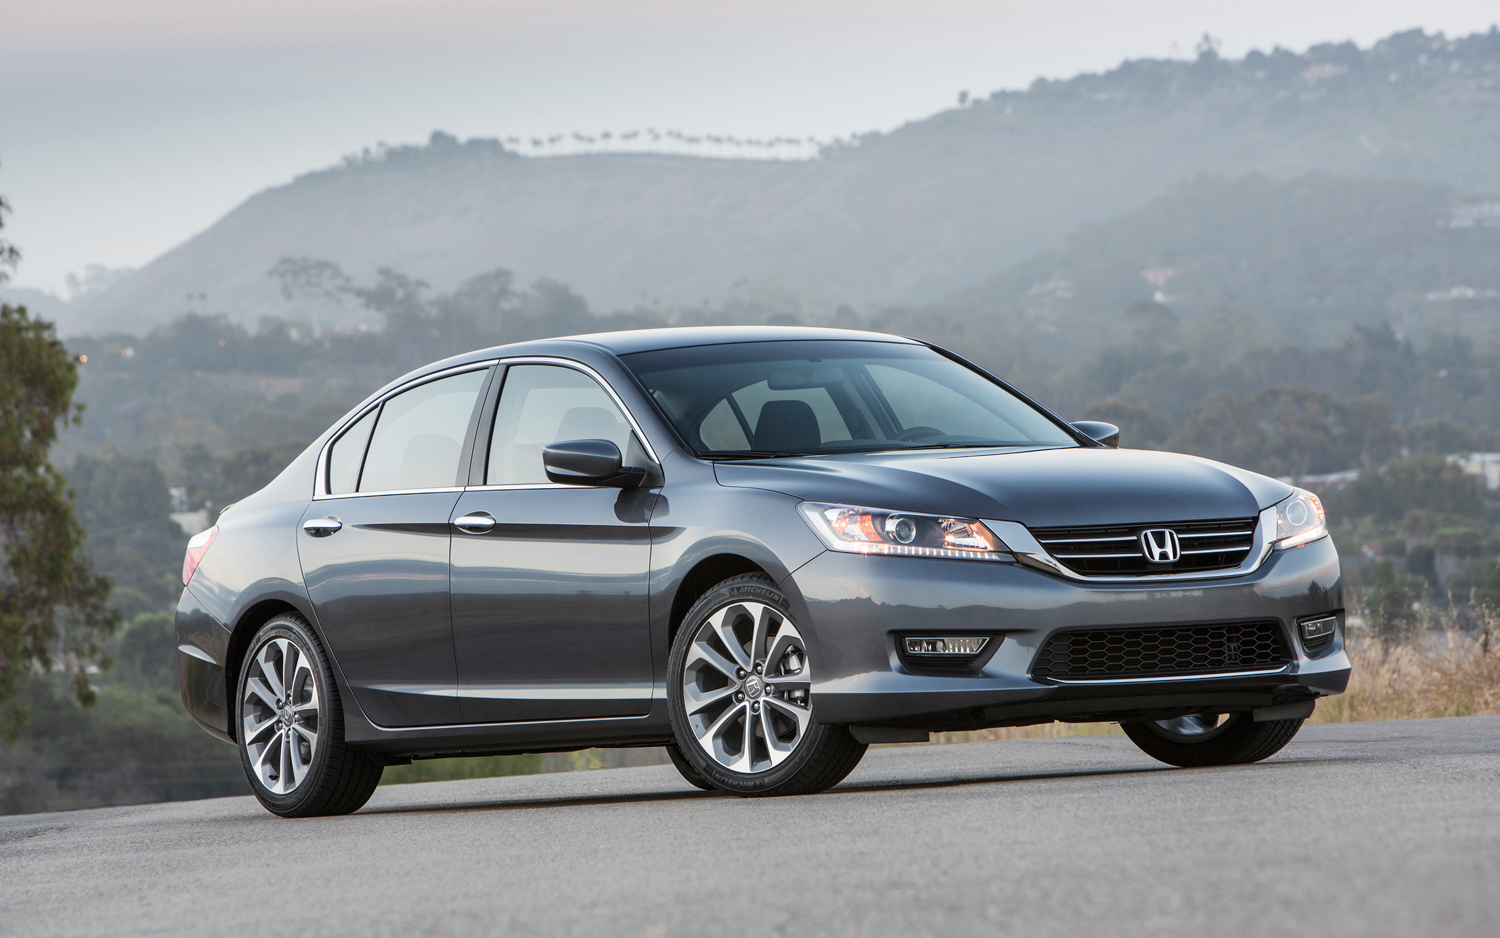 2013 Honda Accord #3